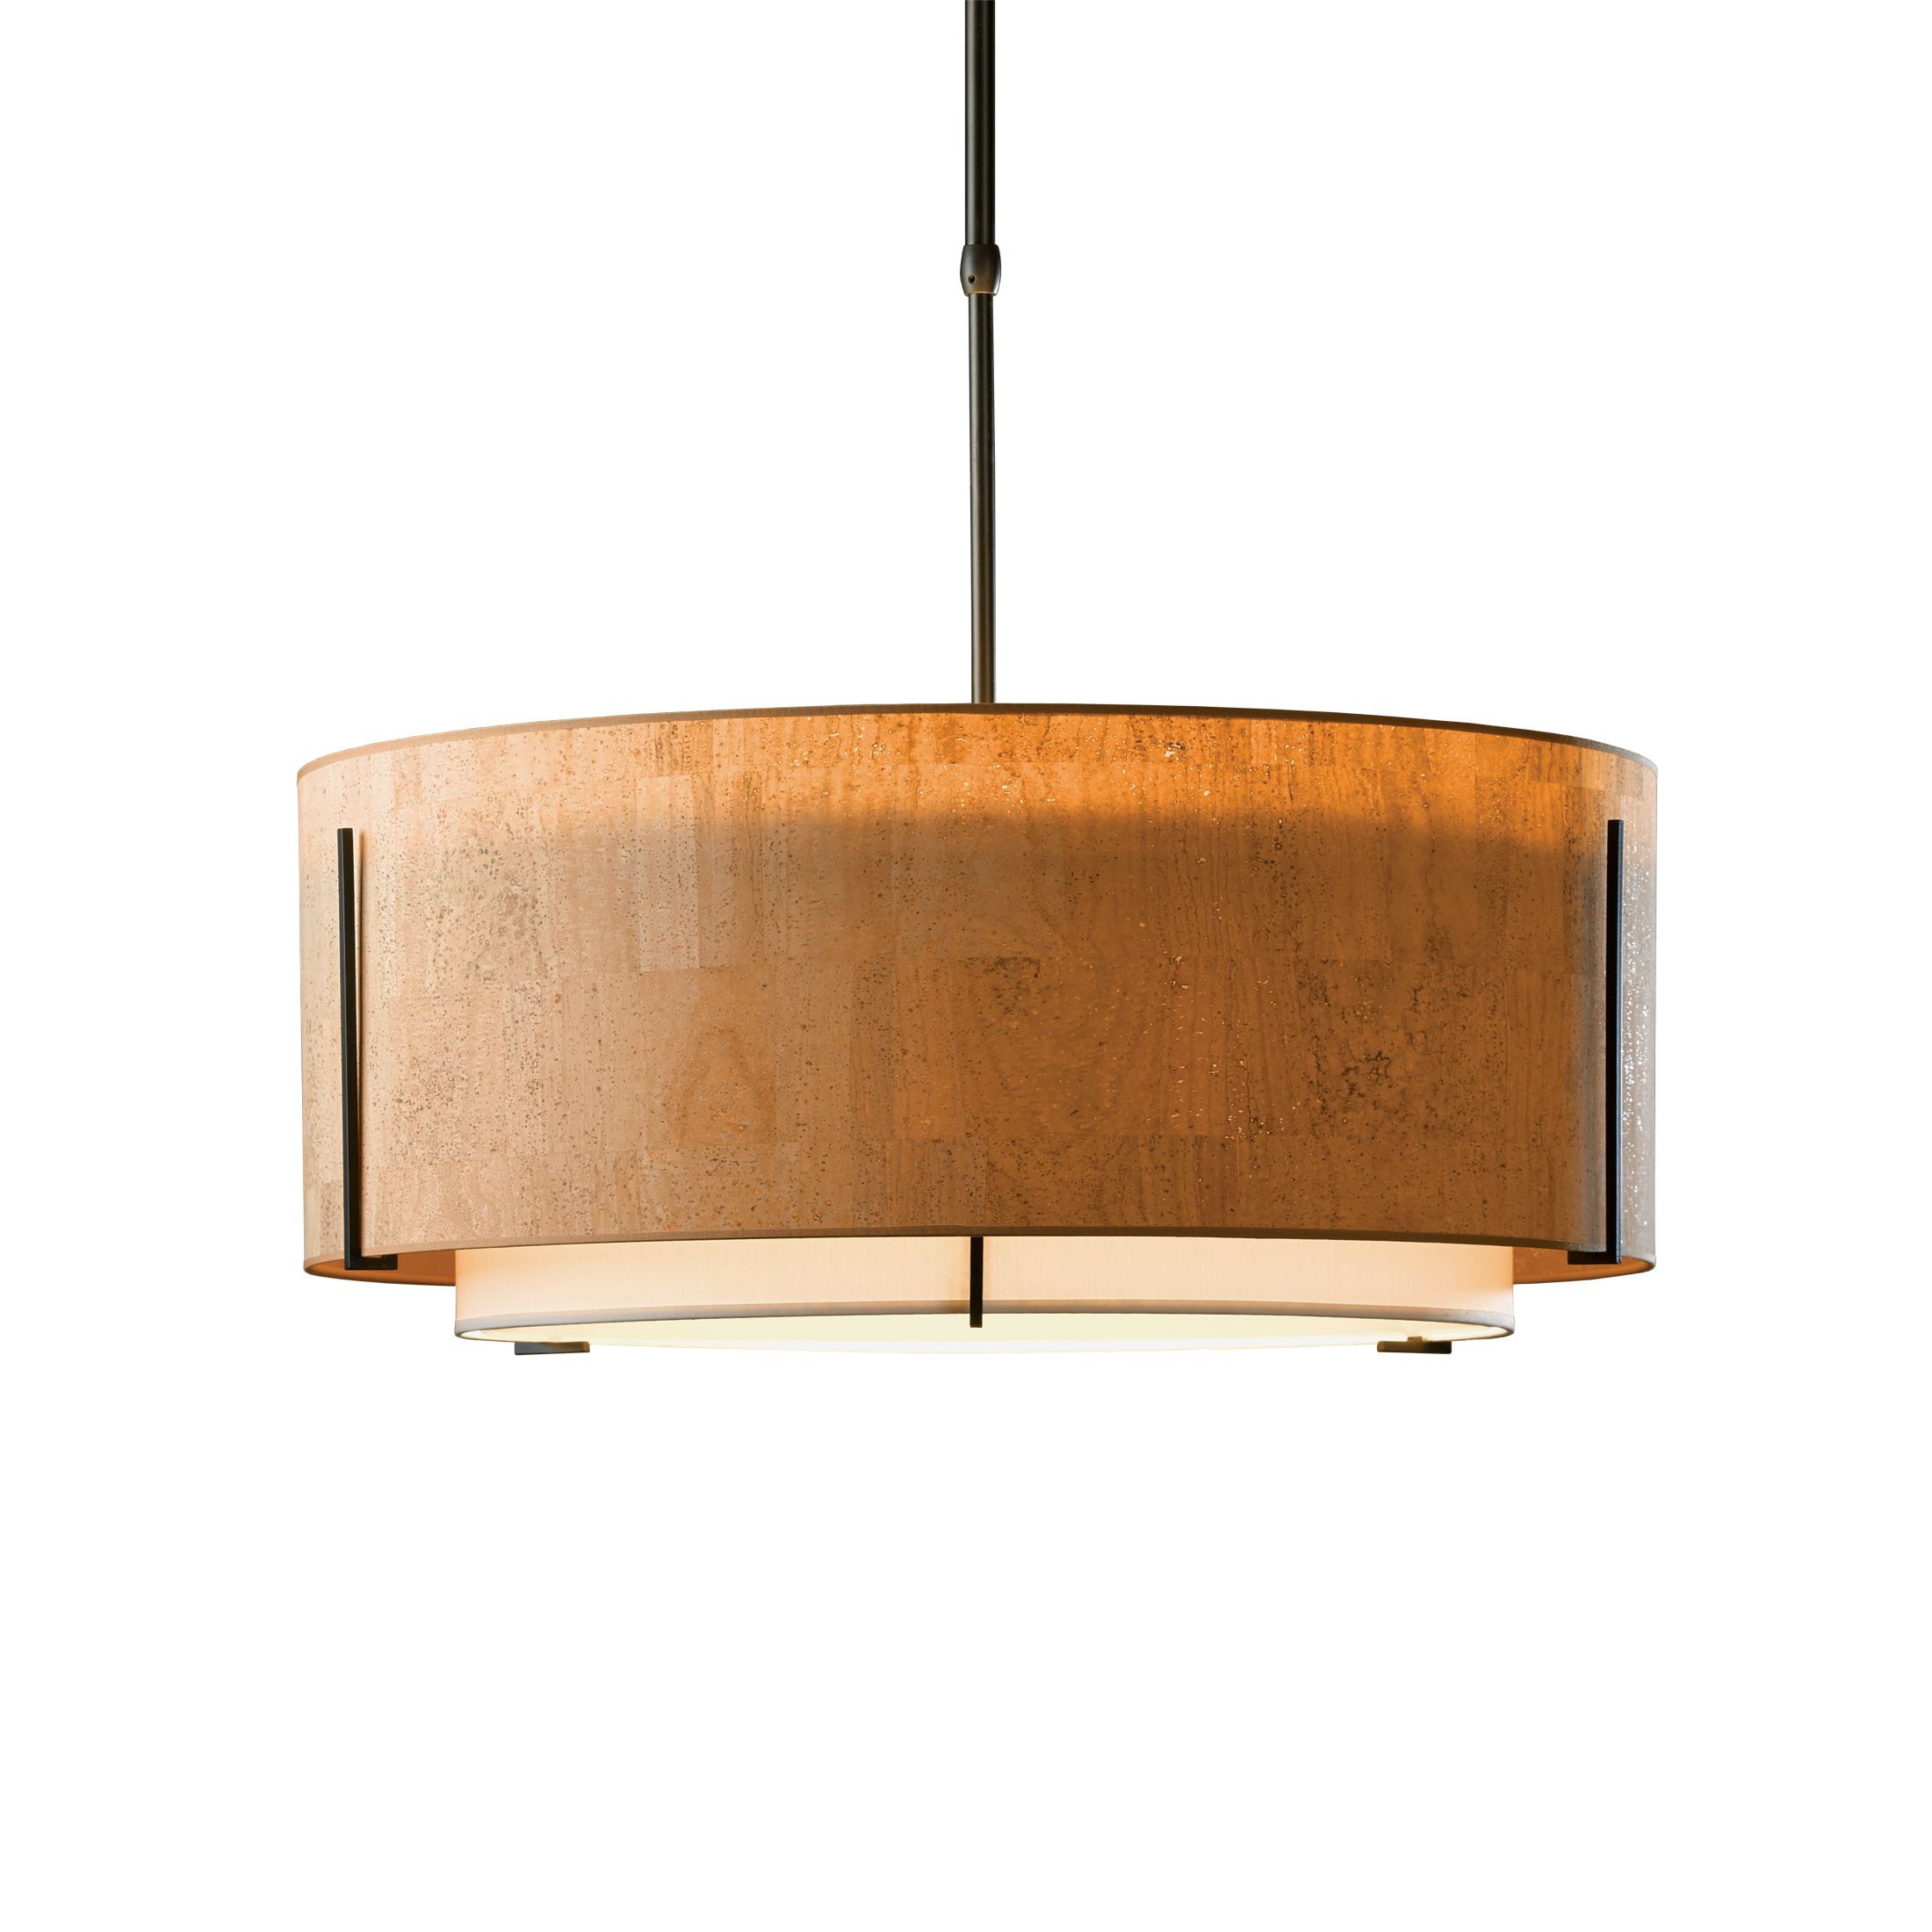 Exos Large Double Shade Pendant 139610 1758 Thumb 1 1328 2